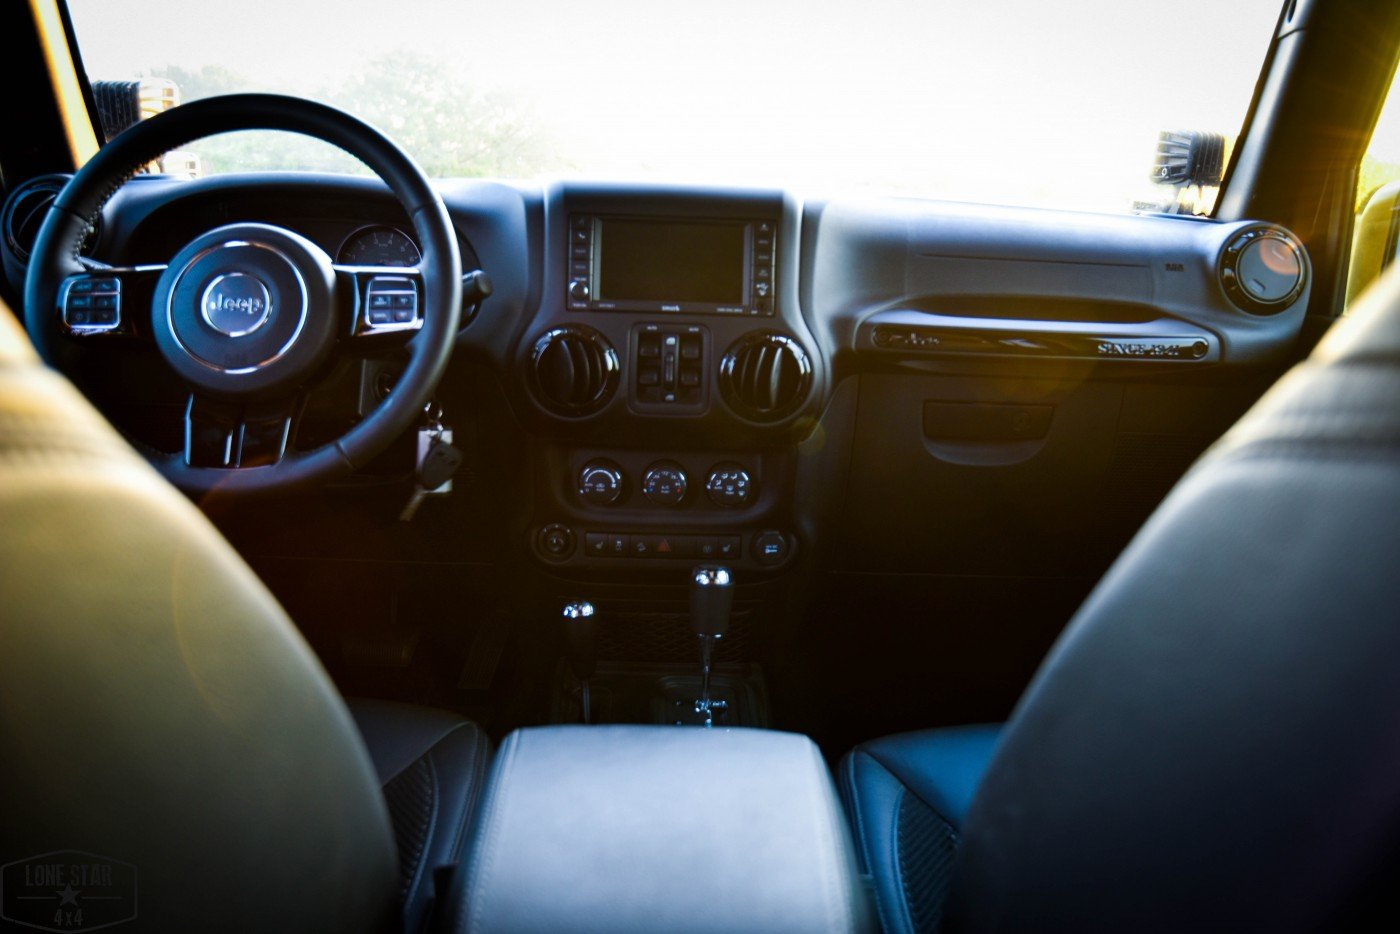 Midnight Edition Jeep Interior Front Seat and Dashboard